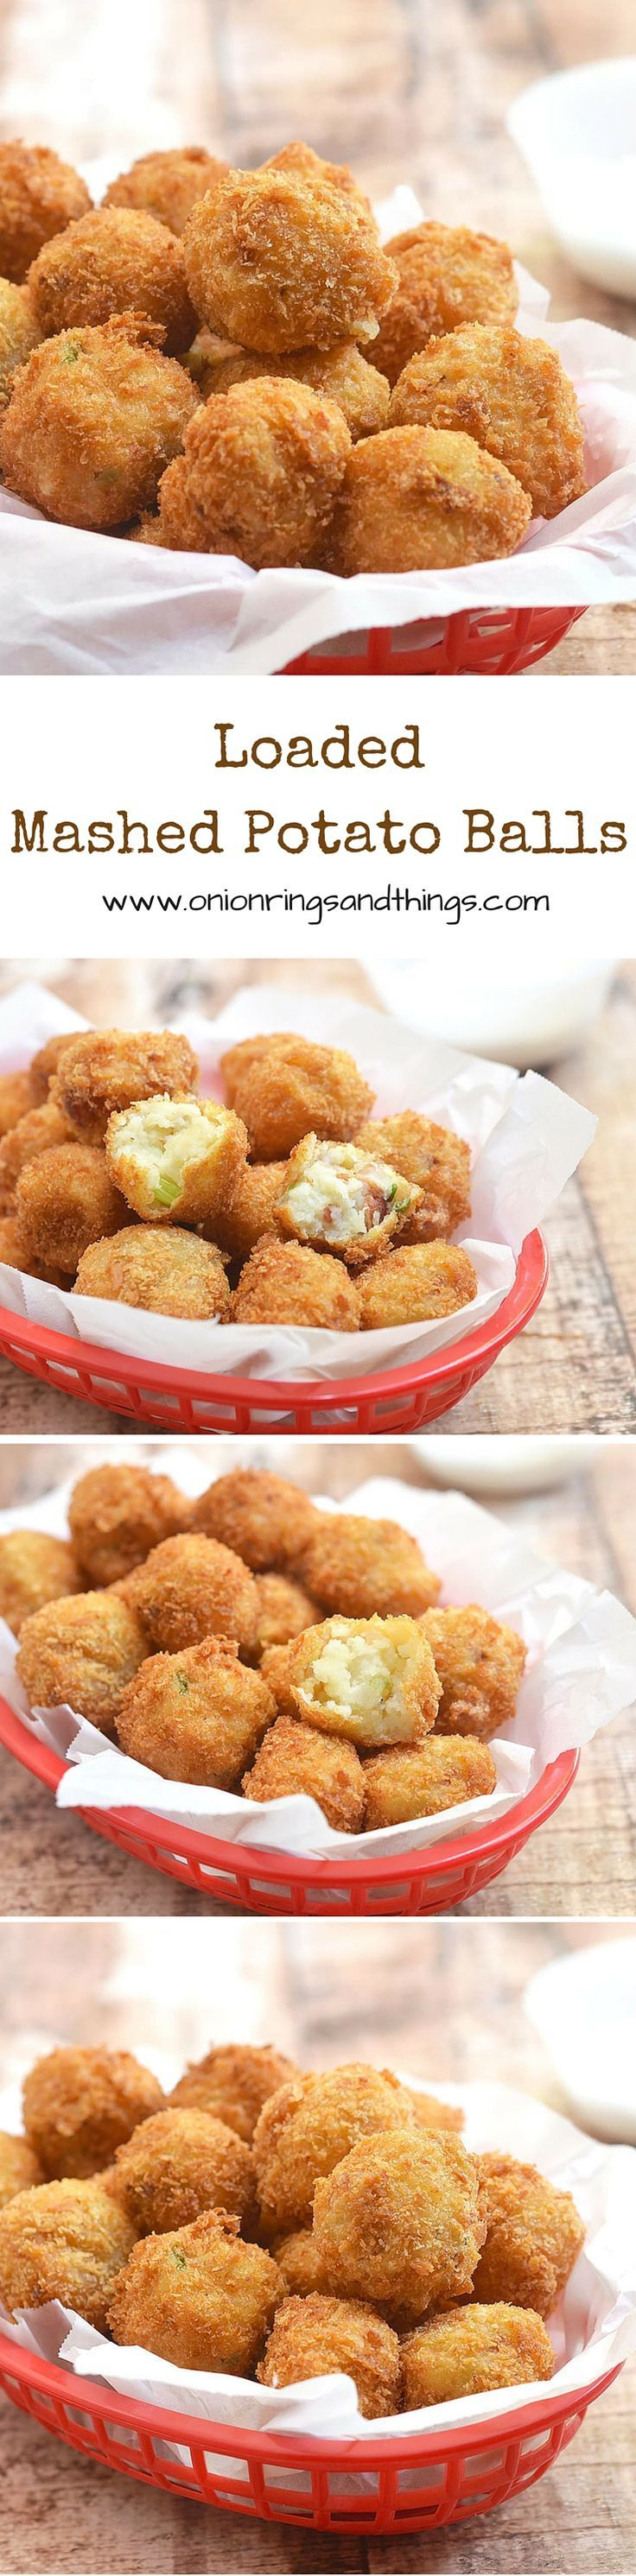 83 best Side Dish Recipes images on Pinterest